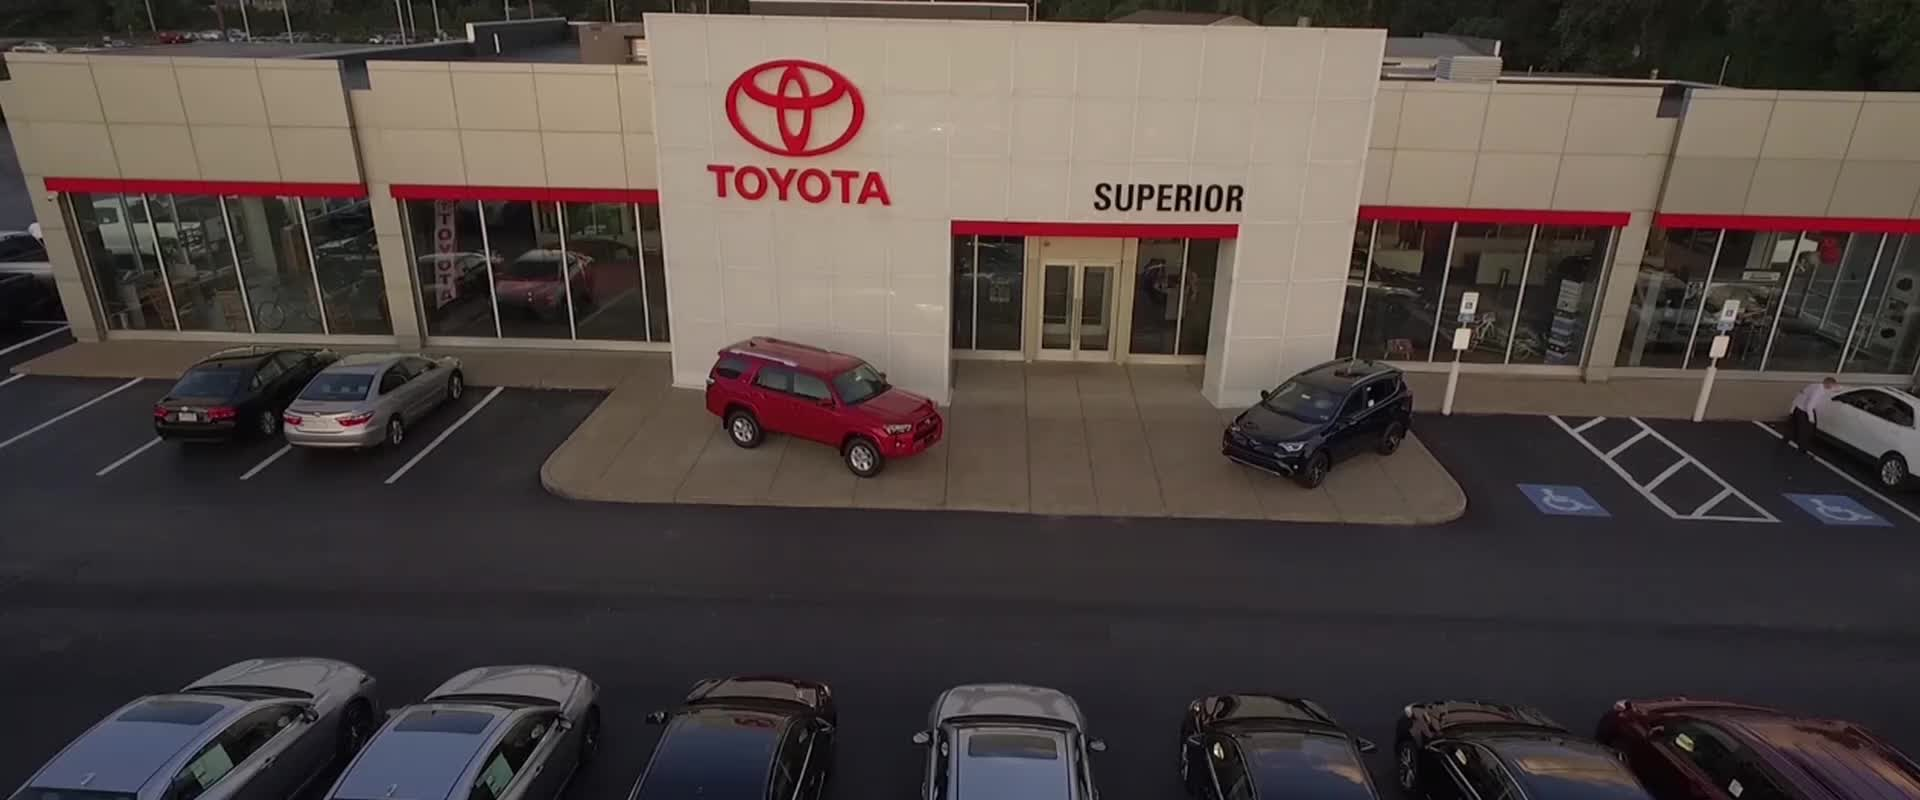 Car Dealerships Erie Pa >> Toyota Dealer Erie Pa New Used Cars For Sale Near